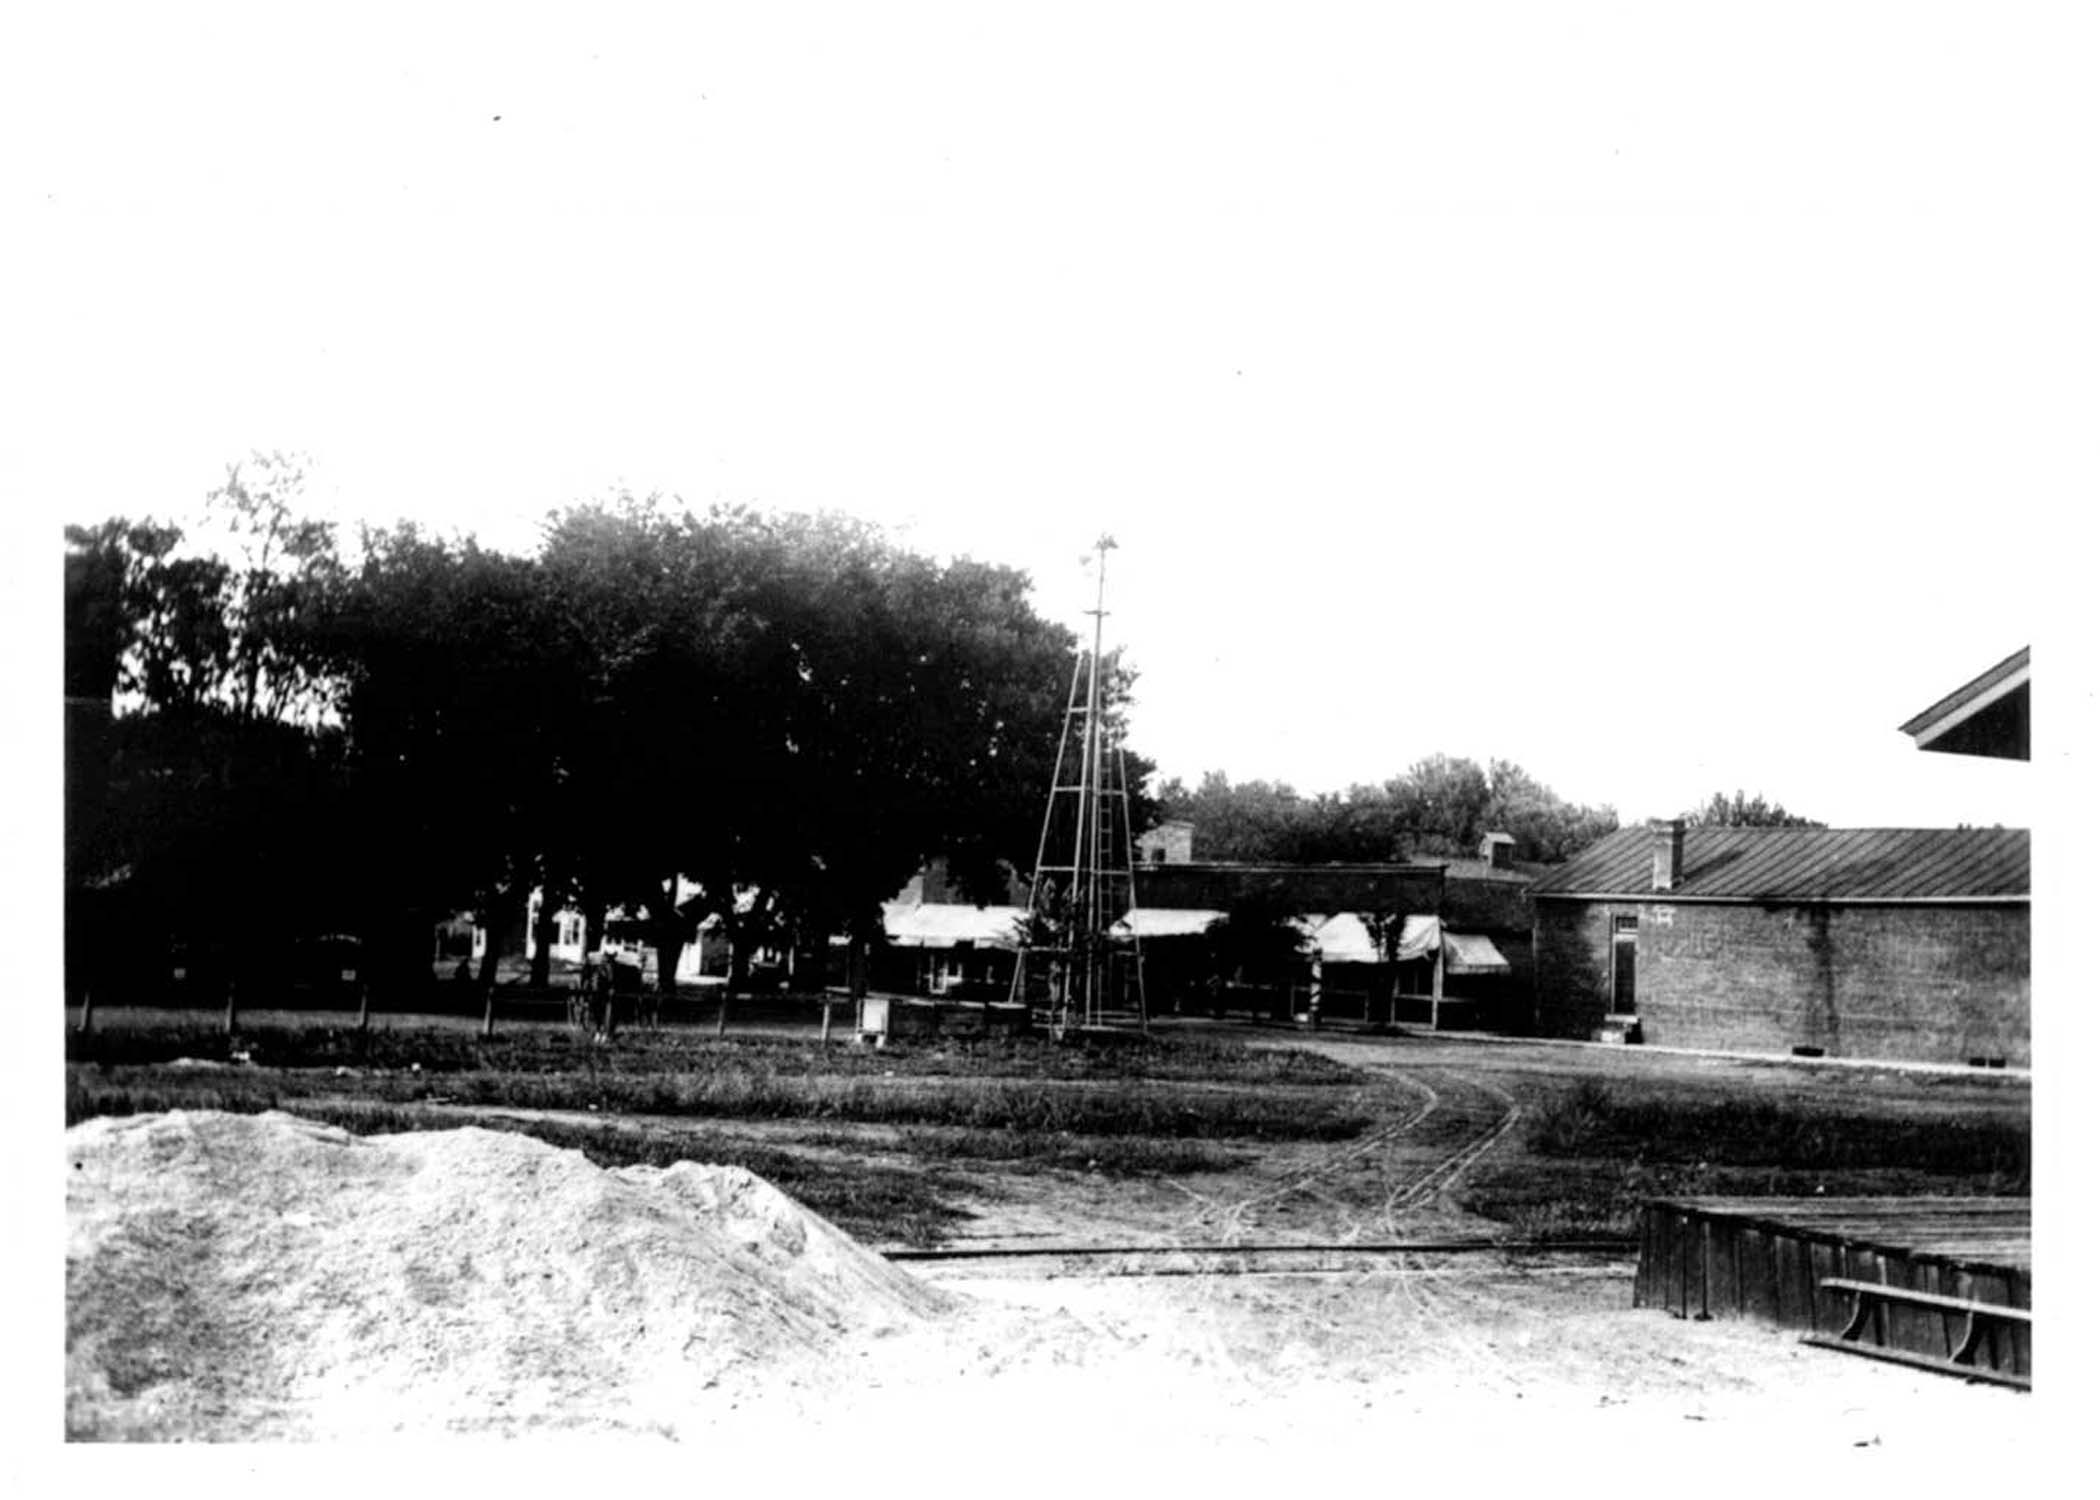 Around 1900, this downtown water well fed horses and filled water tanks.